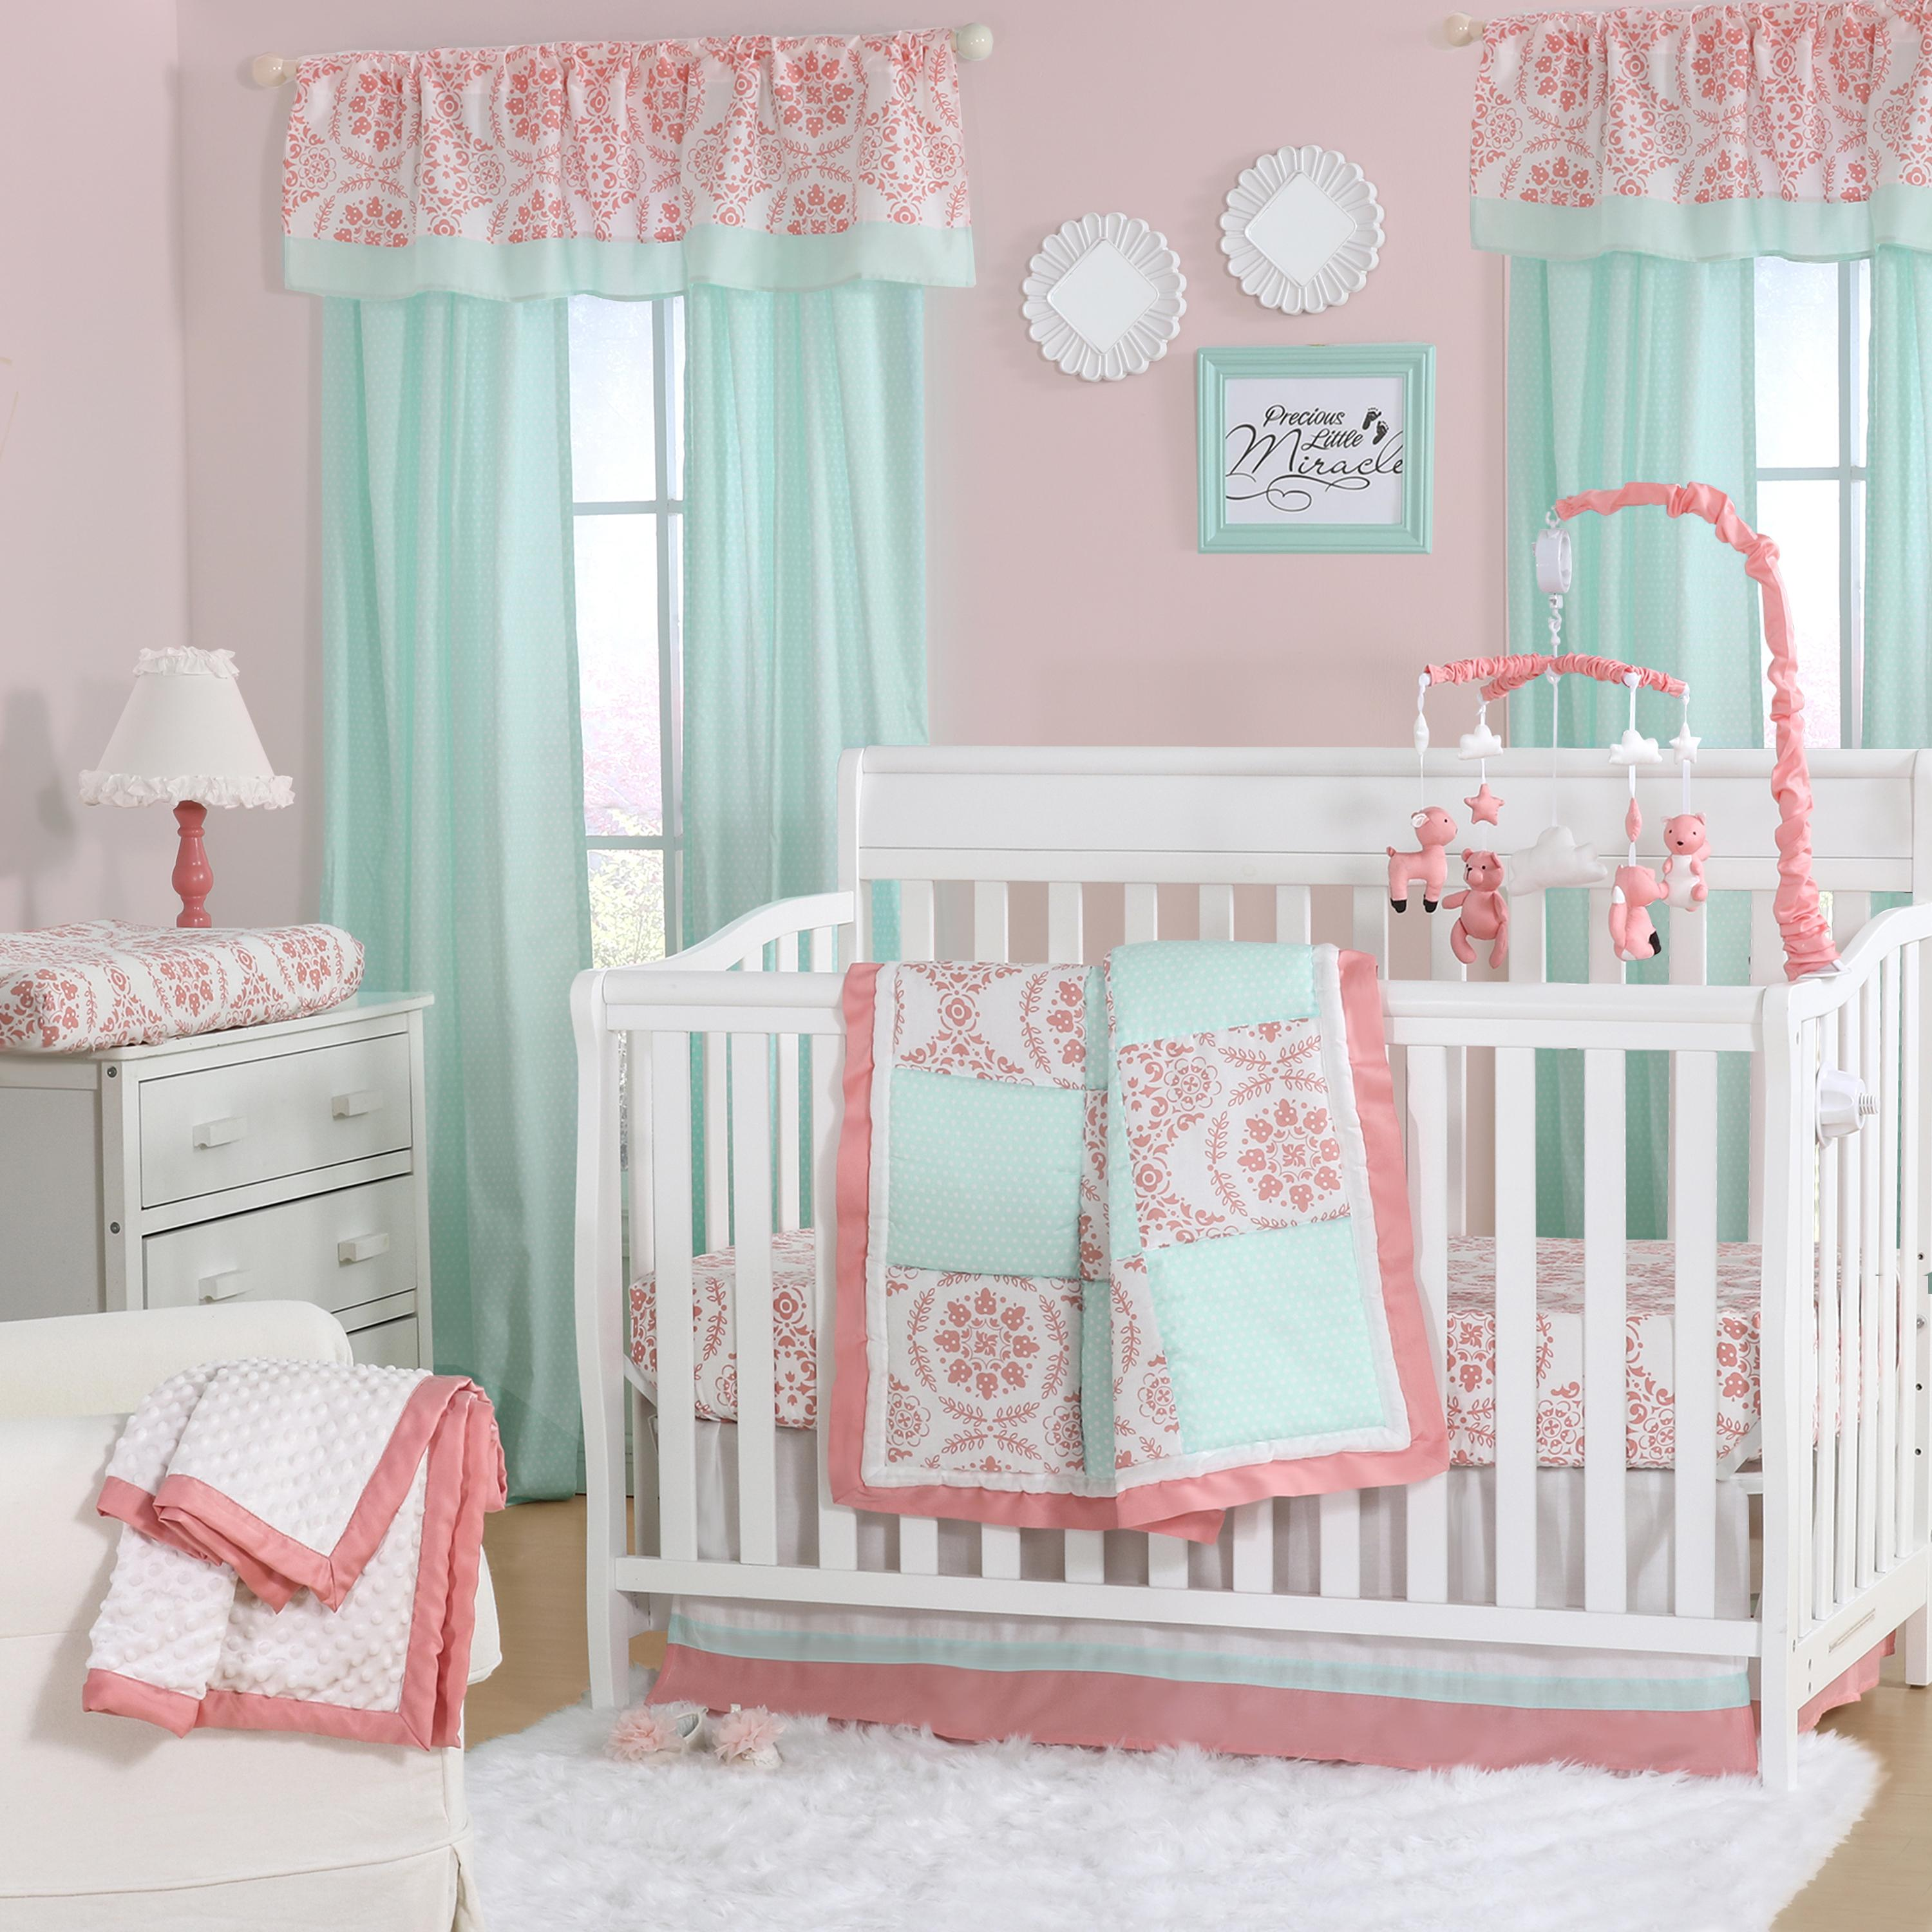 Pretty Patch Medallion Crib Starter Set in Coral & Mint